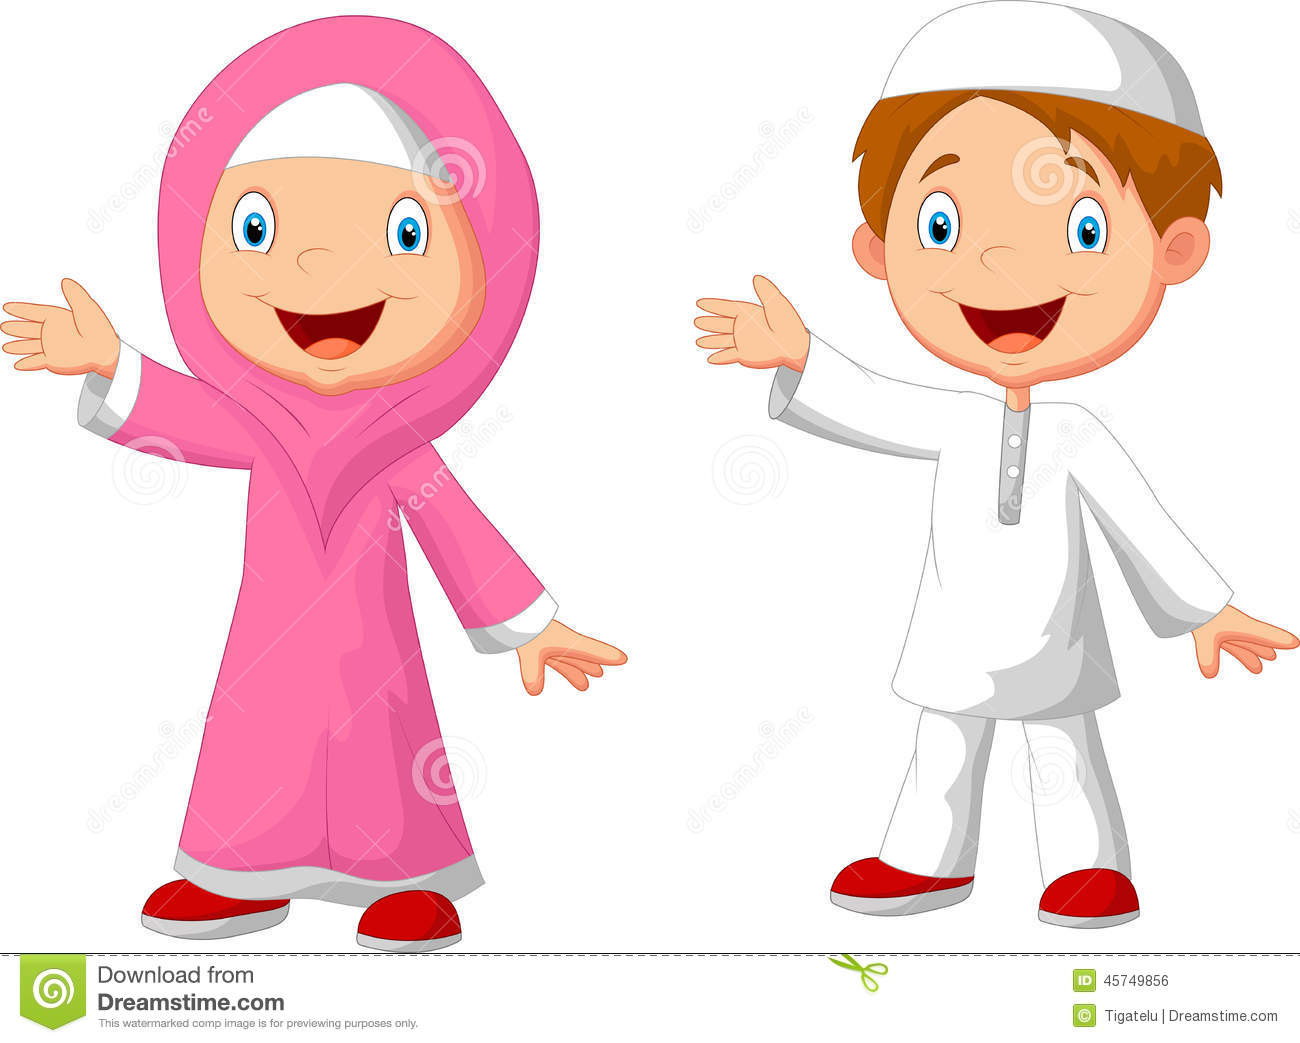 Happy Muslim Kid Cartoon Stock Vector - Image: 45749856